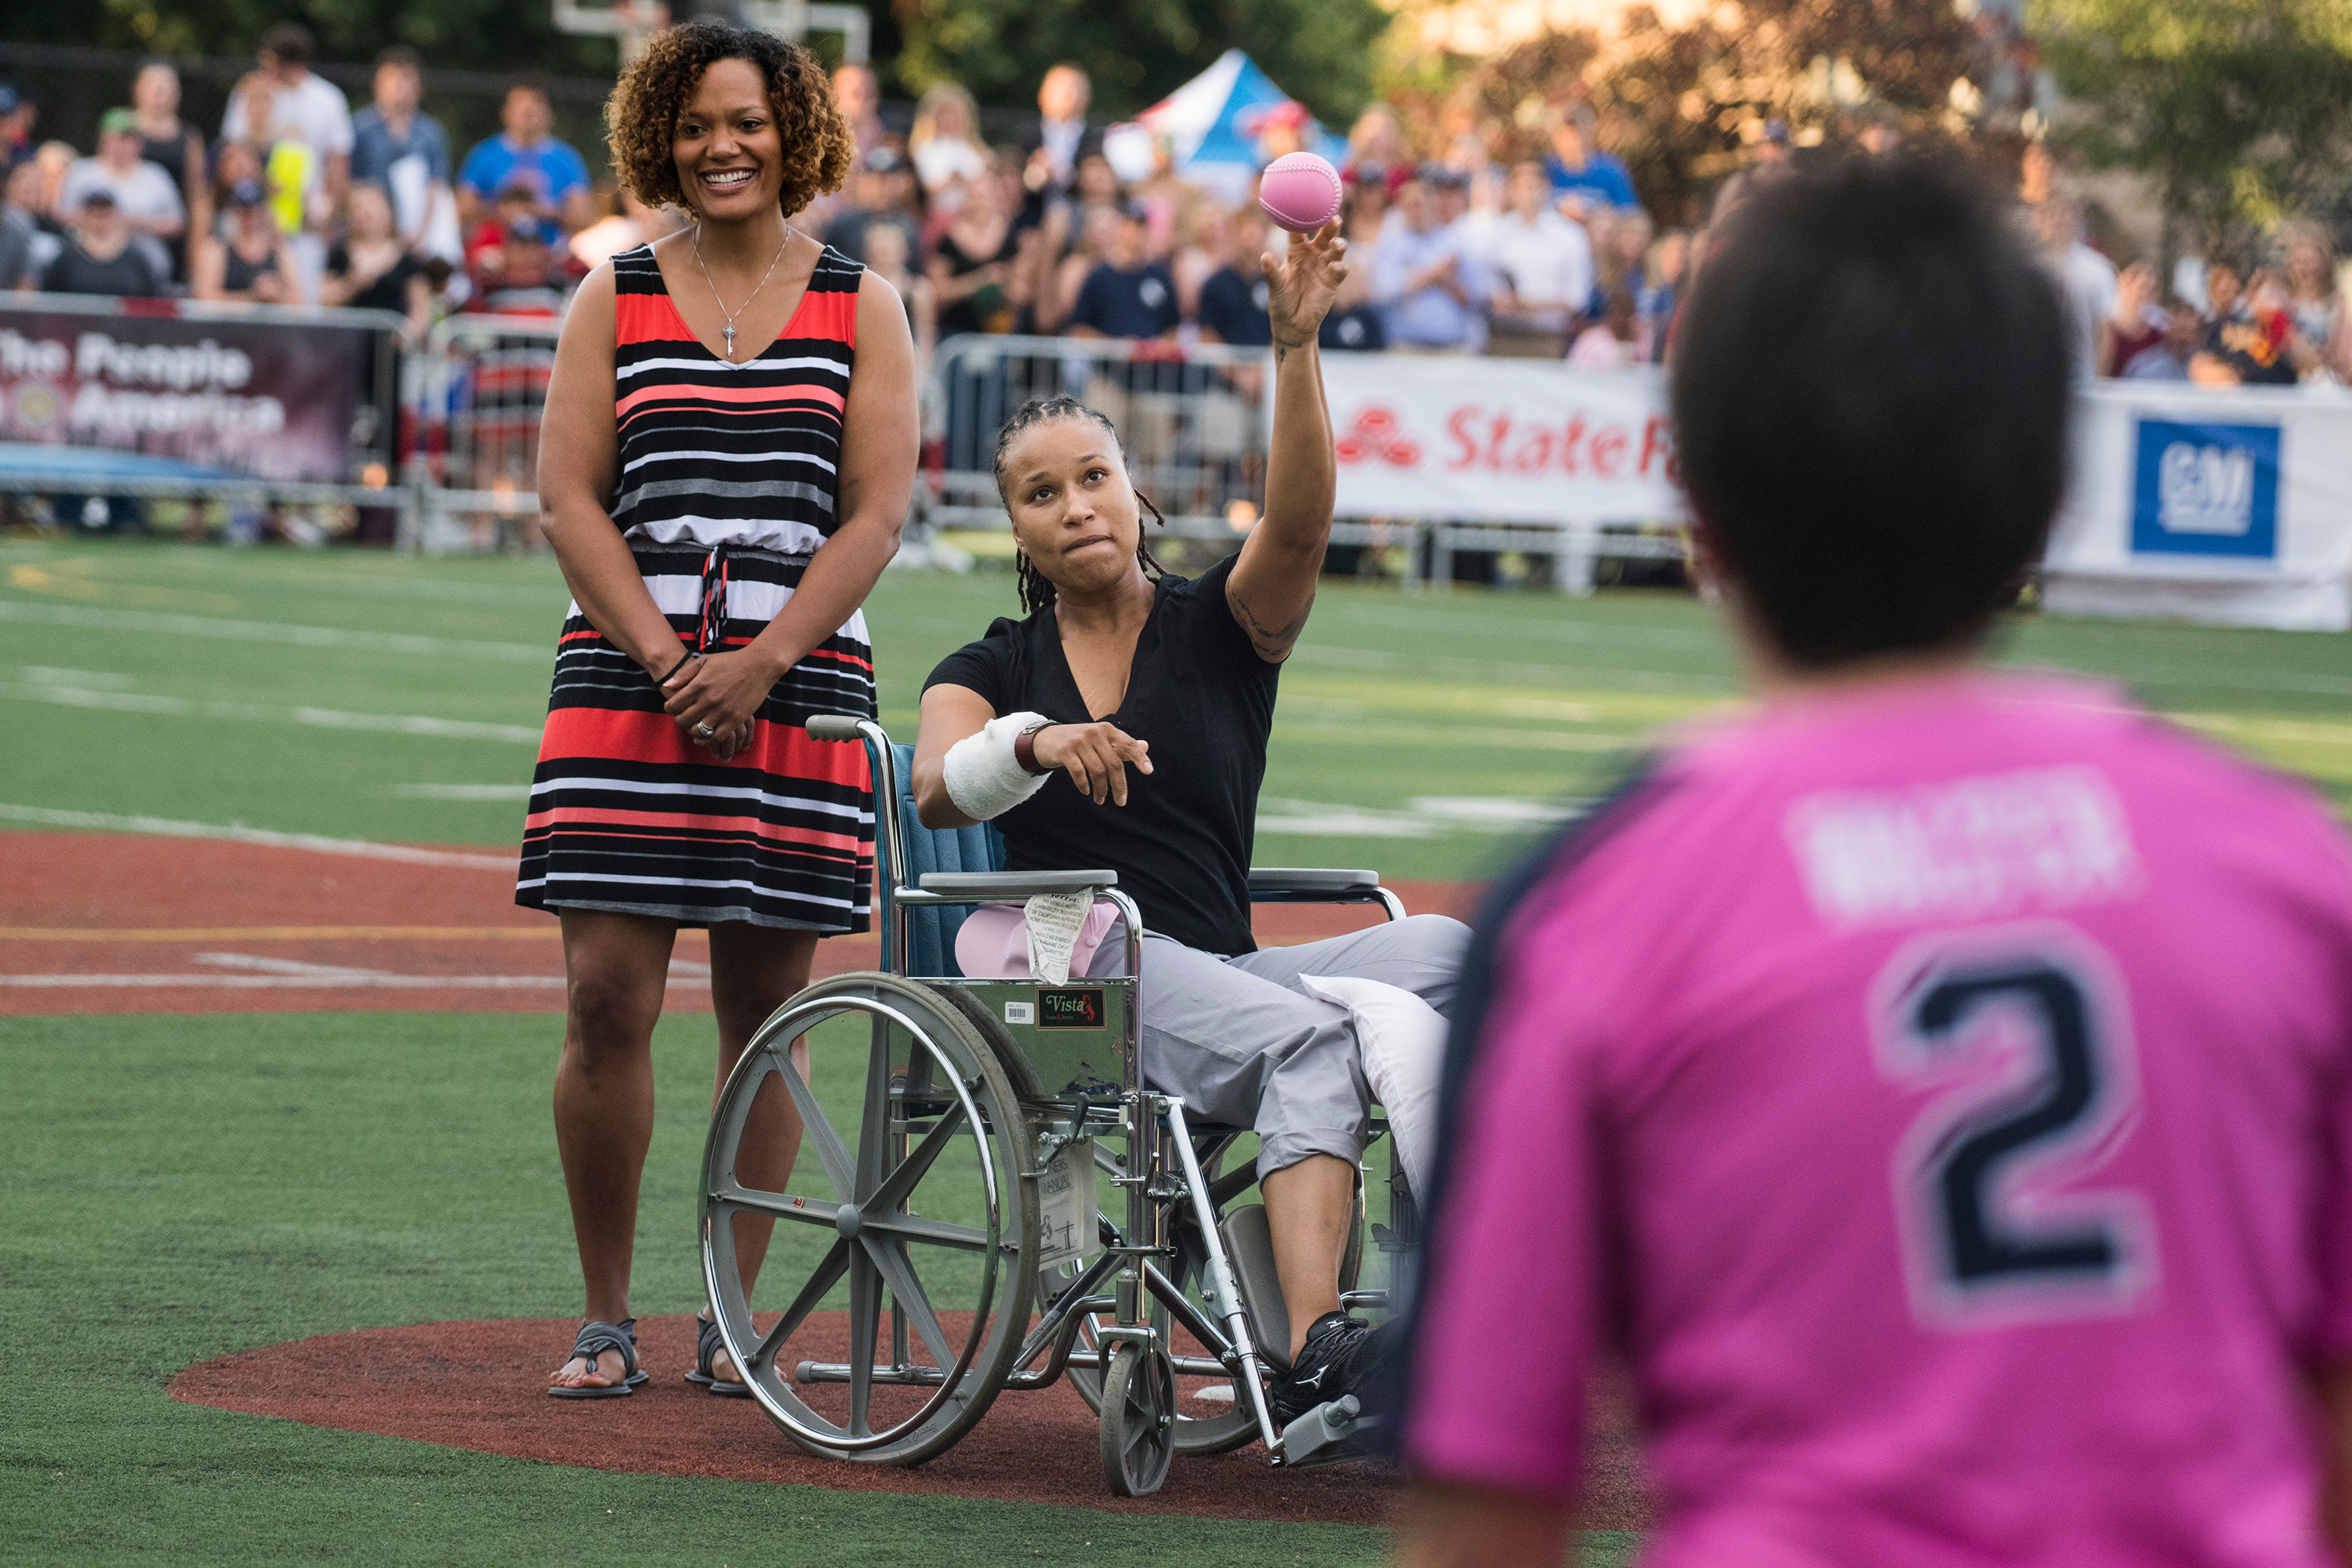 JUNE 21: Capitol Police officer Crystal Griner throws out the first pitch in the Congressional Women's Softball game that pits congresswomen against female journalists at Watkins Recreation Center on Capitol Hill. Griner was injured in last week's shooting at the Republican baseball practice. The game benefits the Young Survival Coalition that helps young women with breast cancer. (Tom Williams/CQ Roll Call)